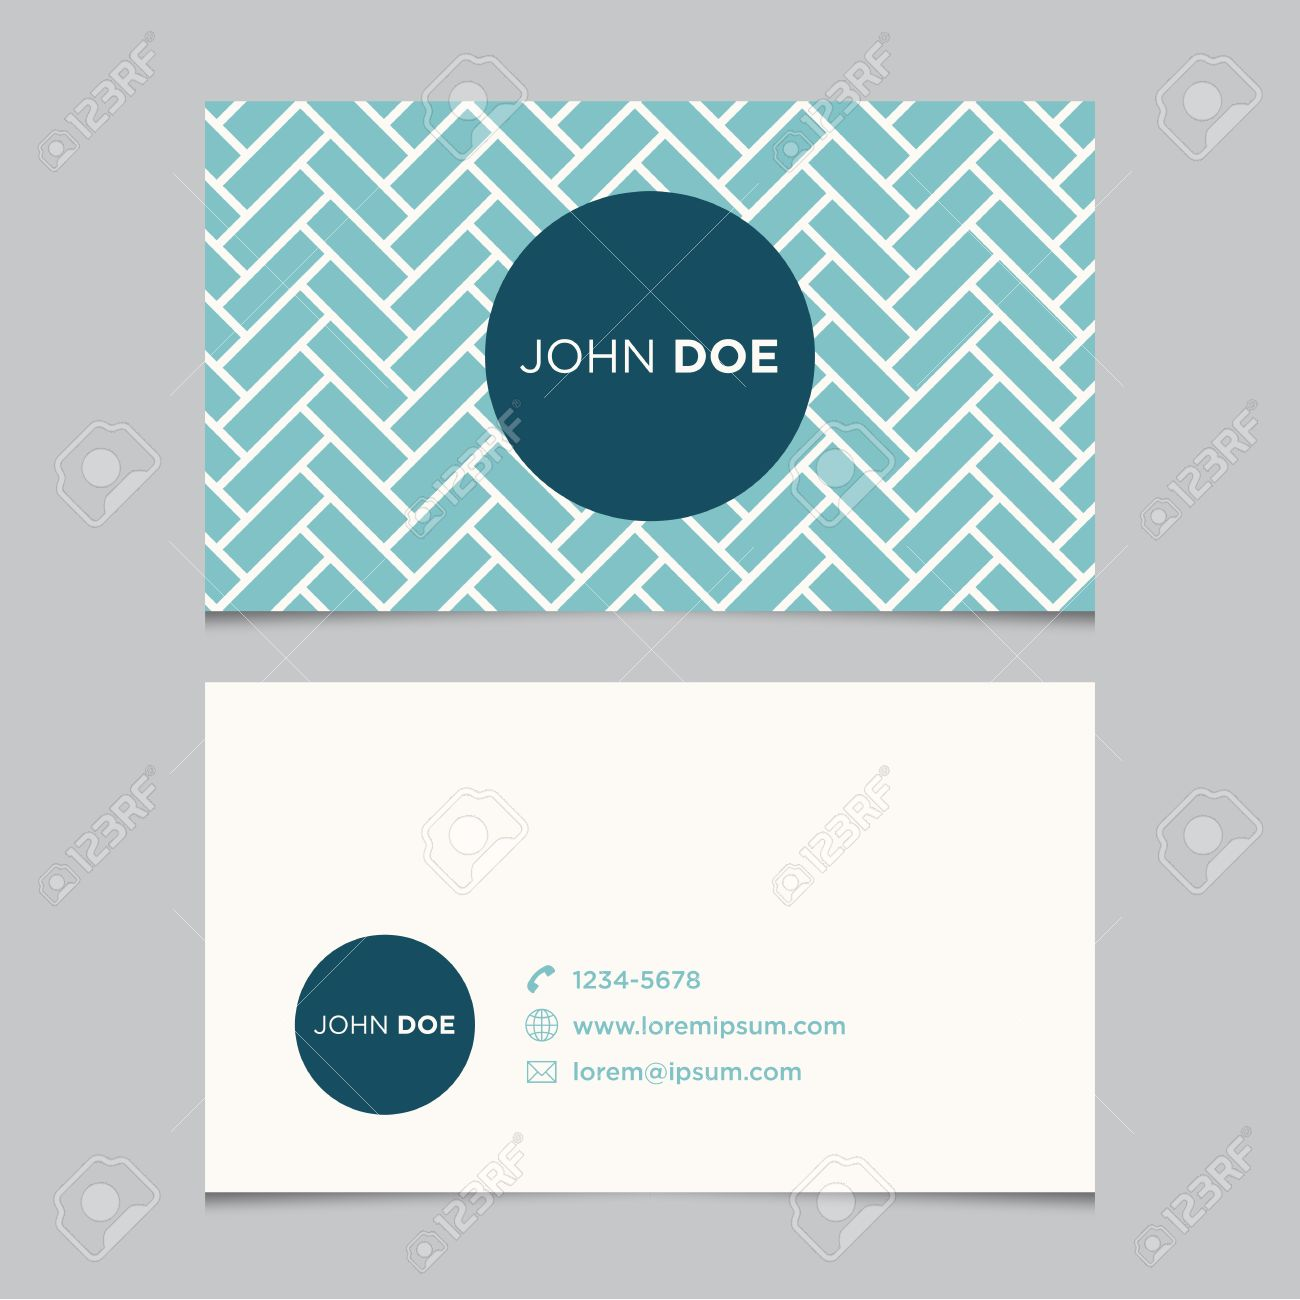 Business card template with background pattern royalty free cliparts business card template with background pattern stock vector 38922777 reheart Images